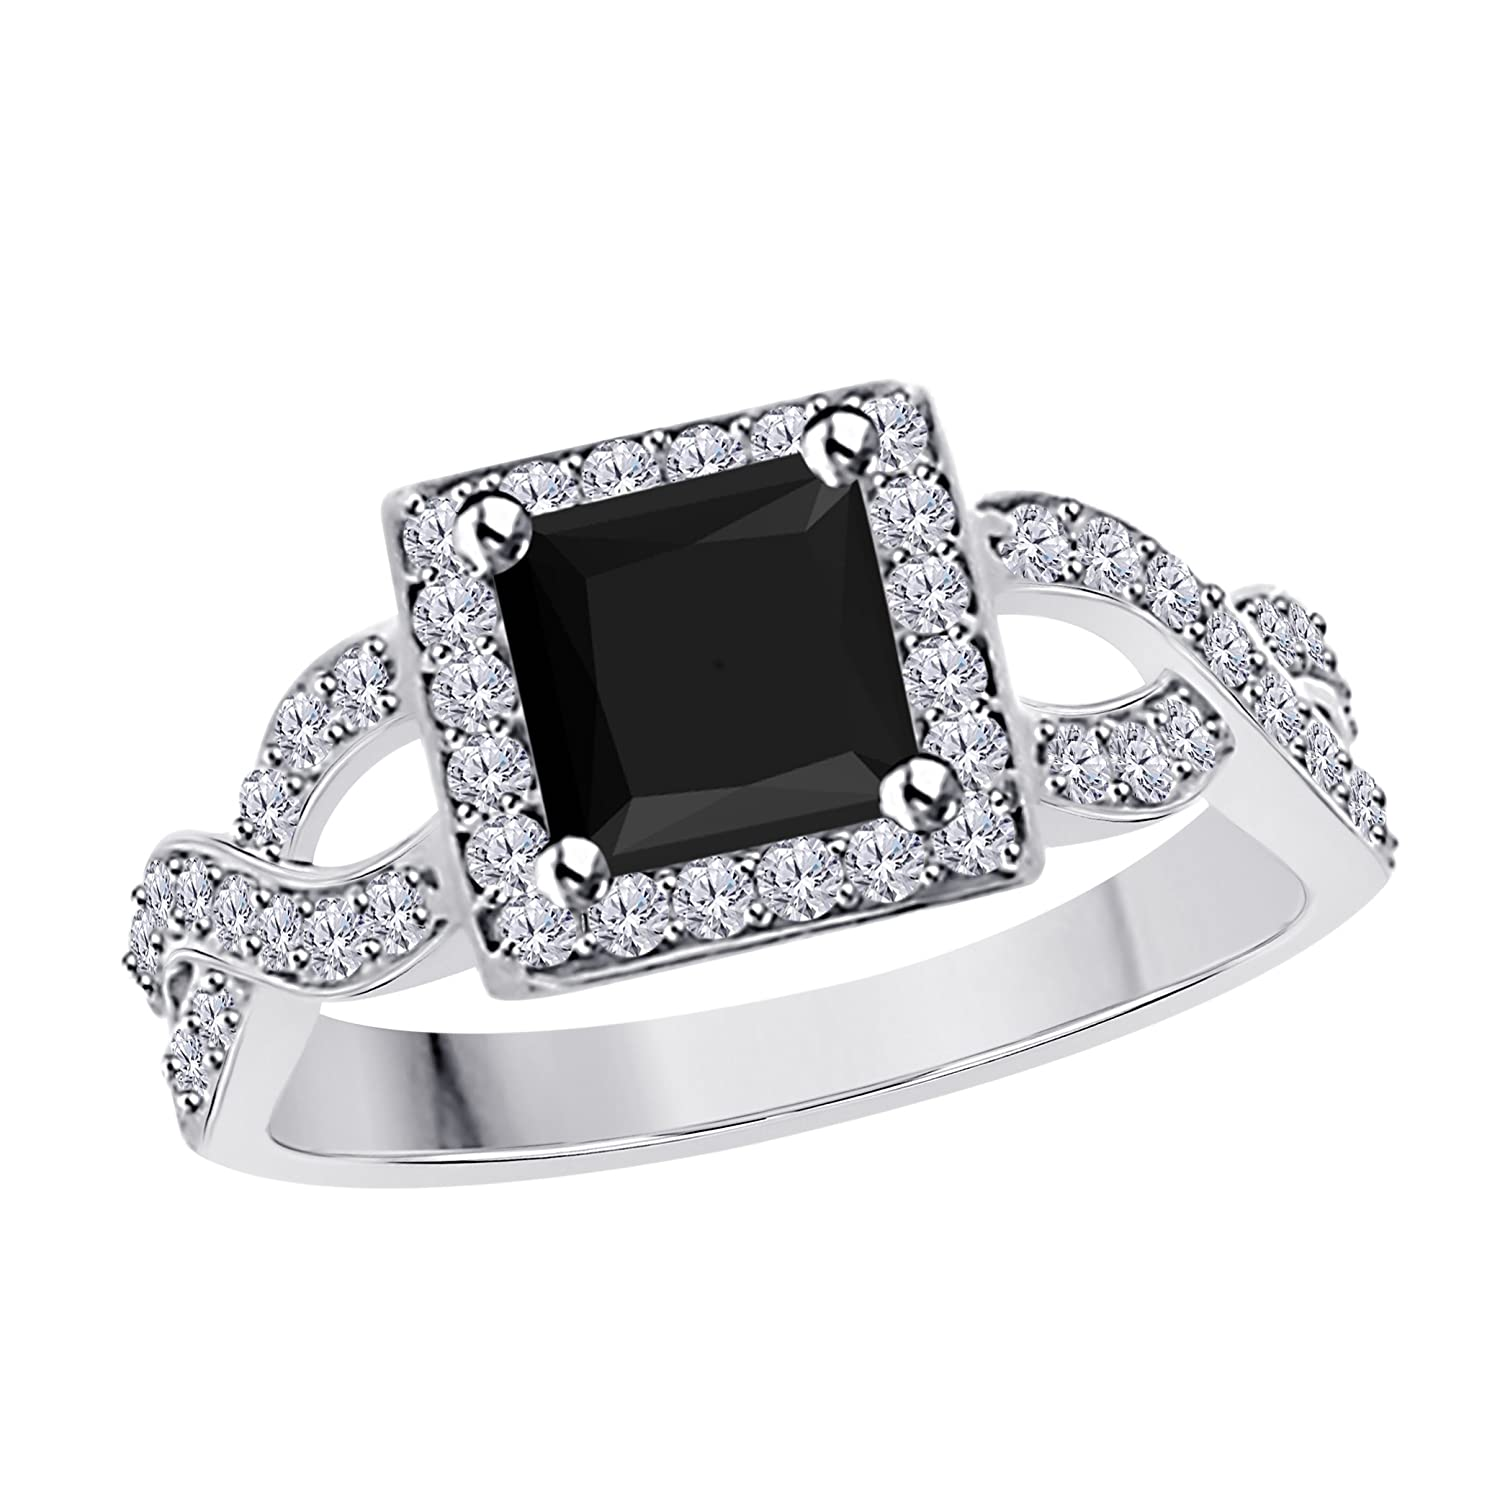 DS Jewels 2.00 Ct Princess Cut Halo Pave Eternity Ring Created Black Sapphire /& Cubic Zirconia Split Shank Engagement Ring in 14k White Gold Plated Alloy Size 4-12